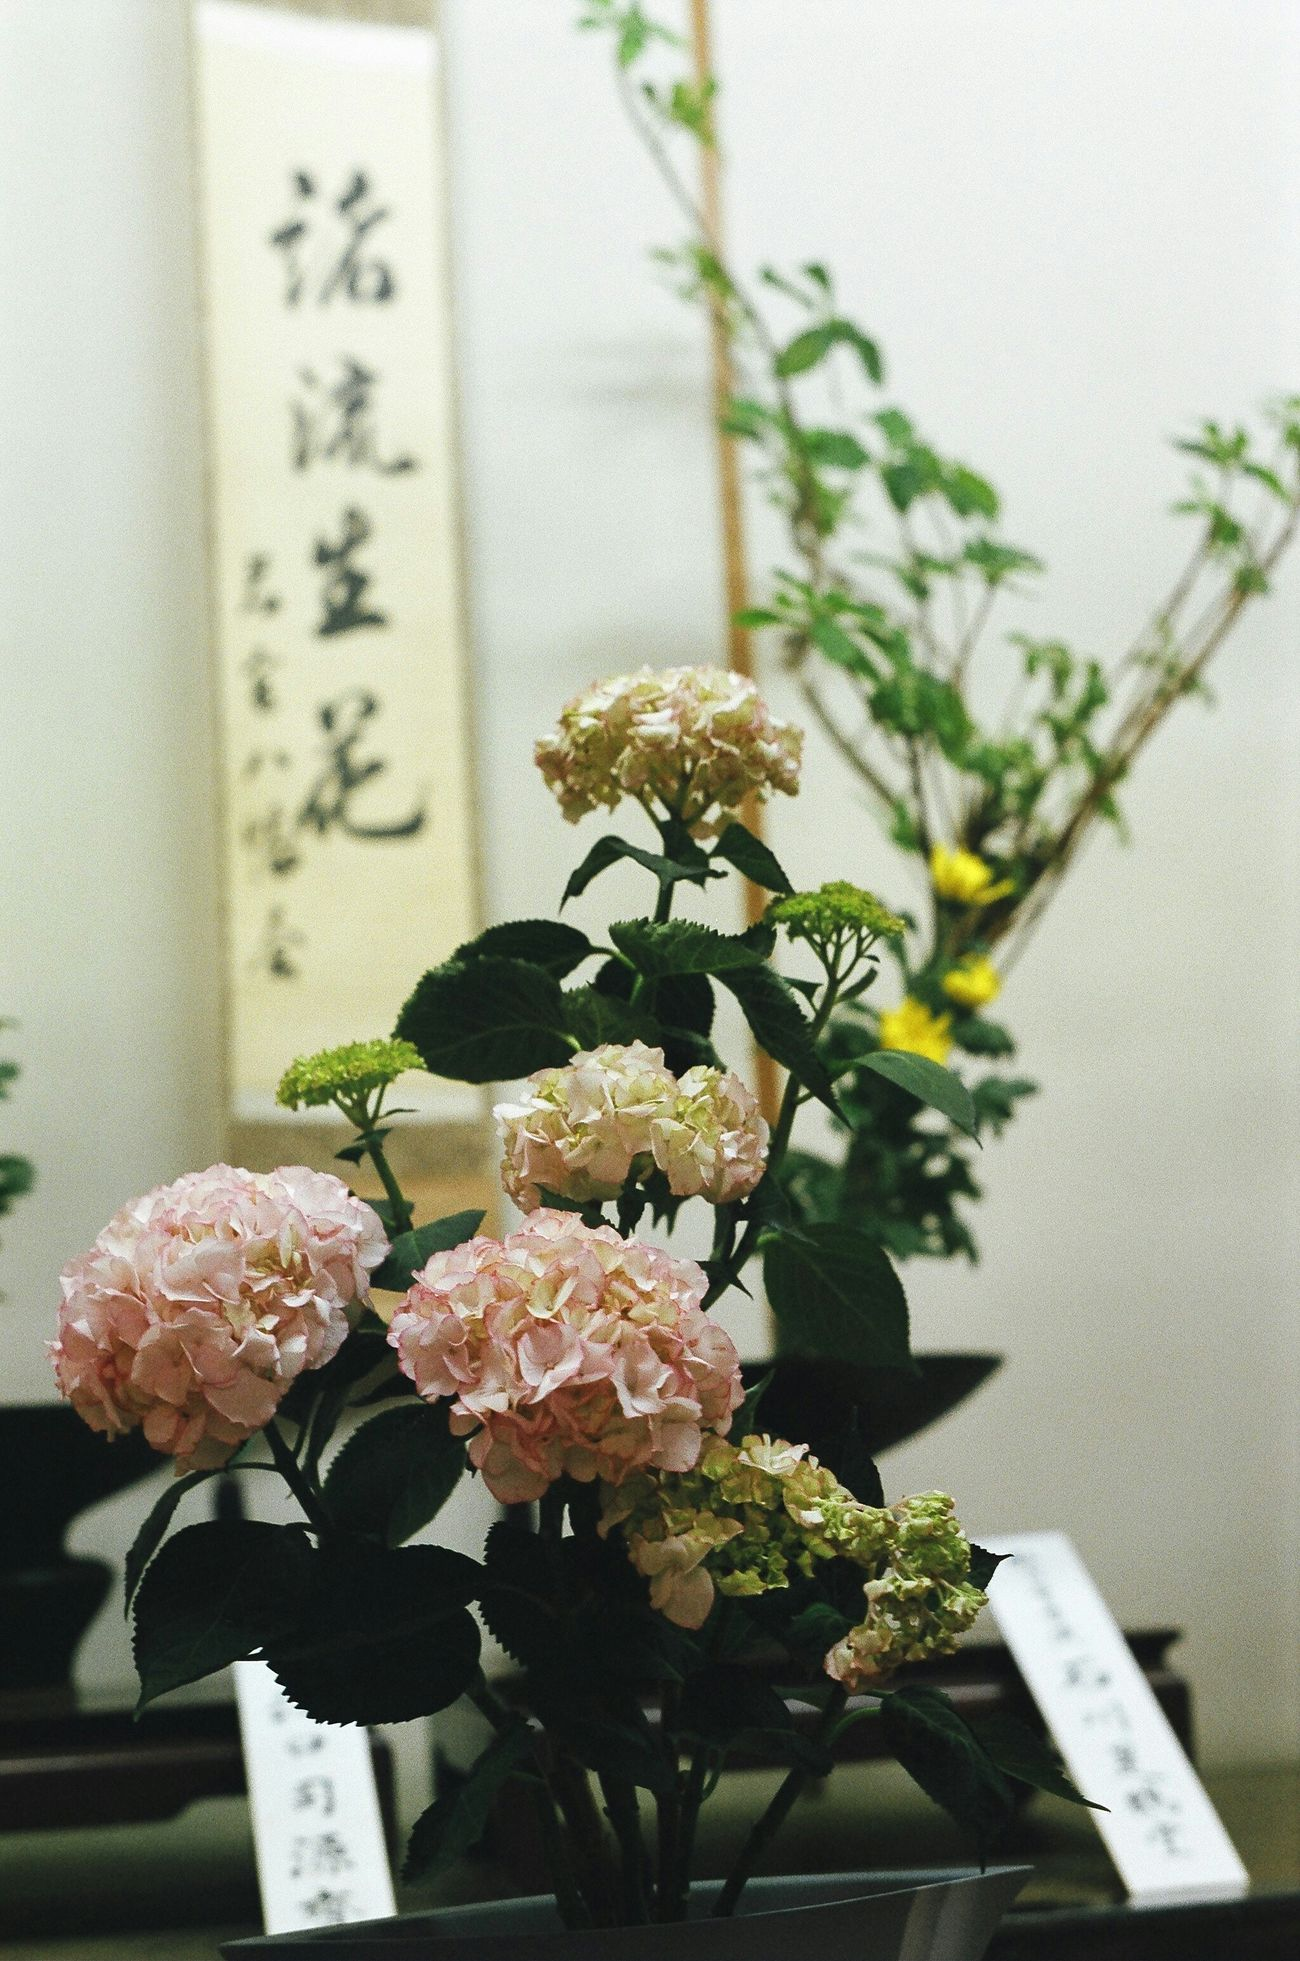 Japan Art IKEBANA 若宮祭 生け花 Nagoya My Country In A Photo Flowers